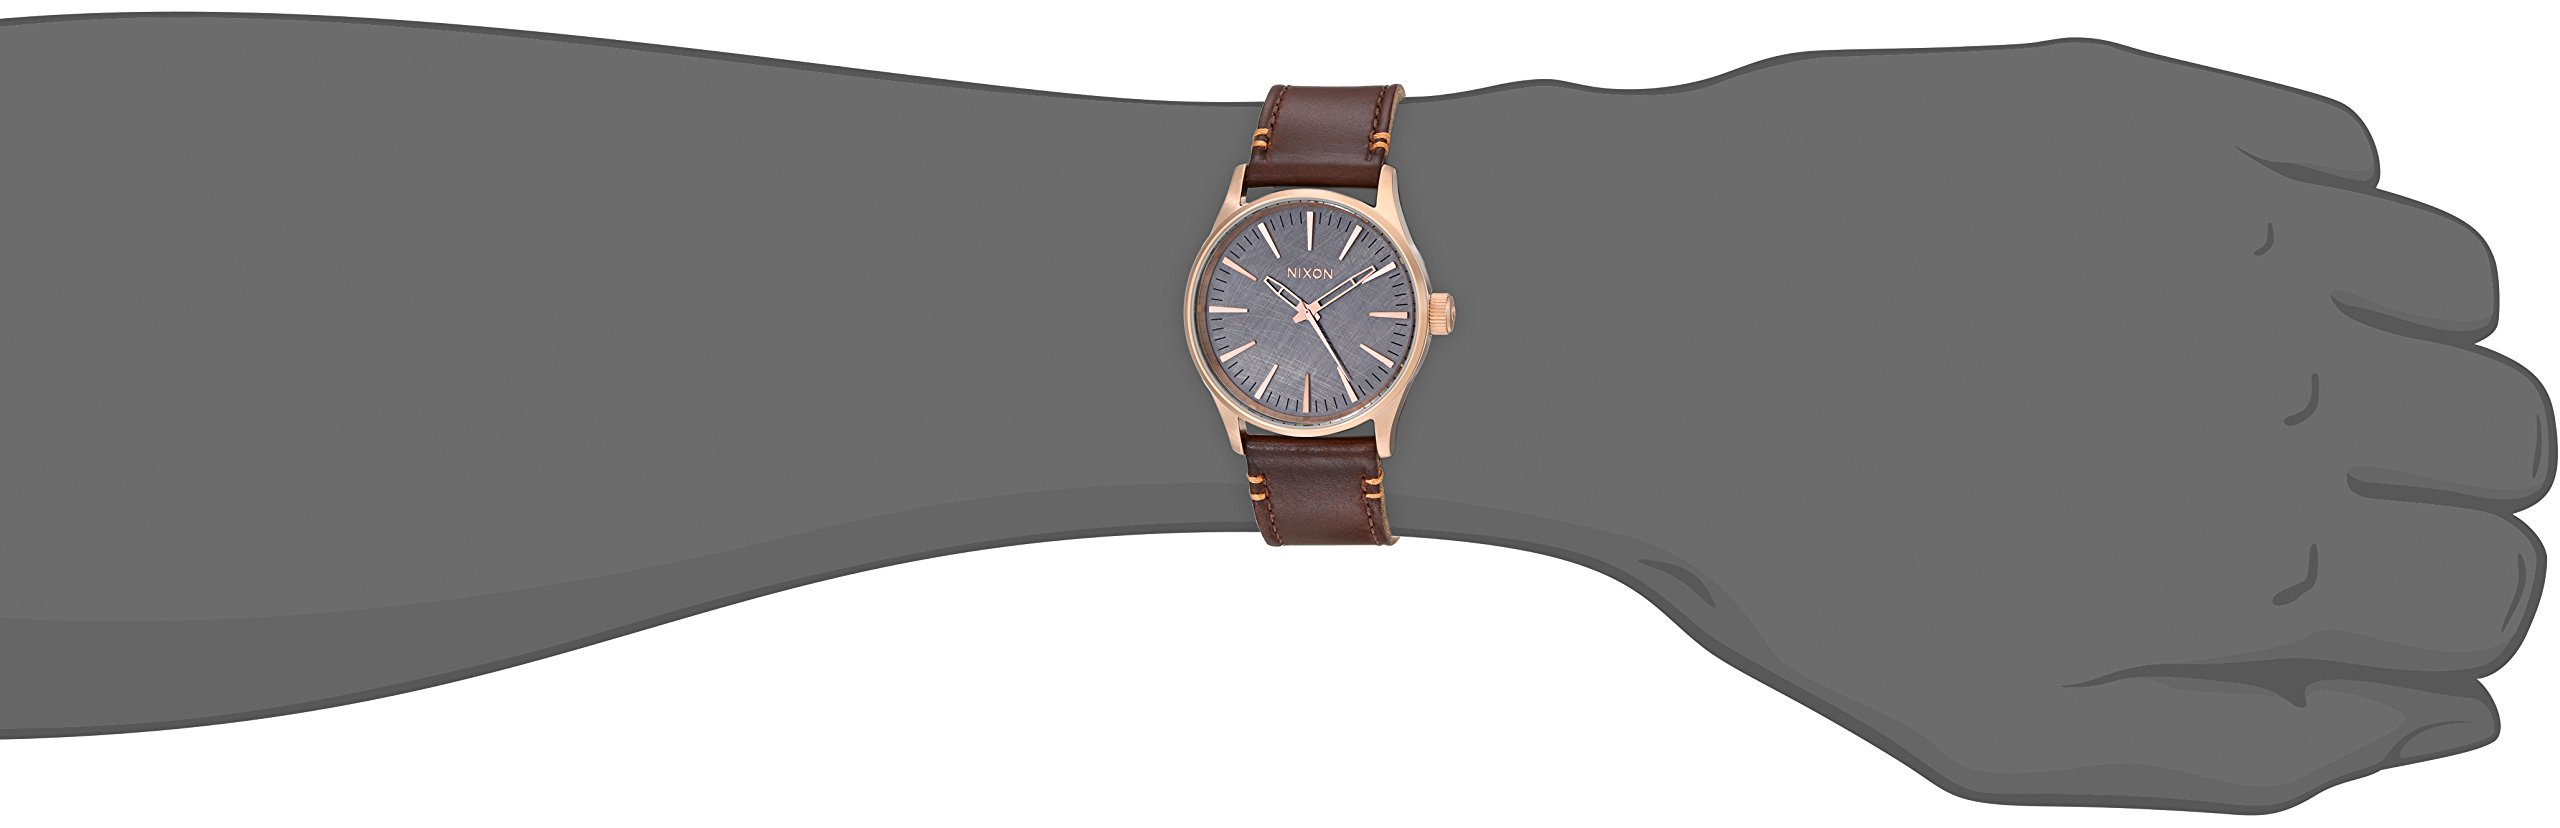 Nixon Men's A3772001 Sentry 38 Leather Watch by NIXON (Image #2)